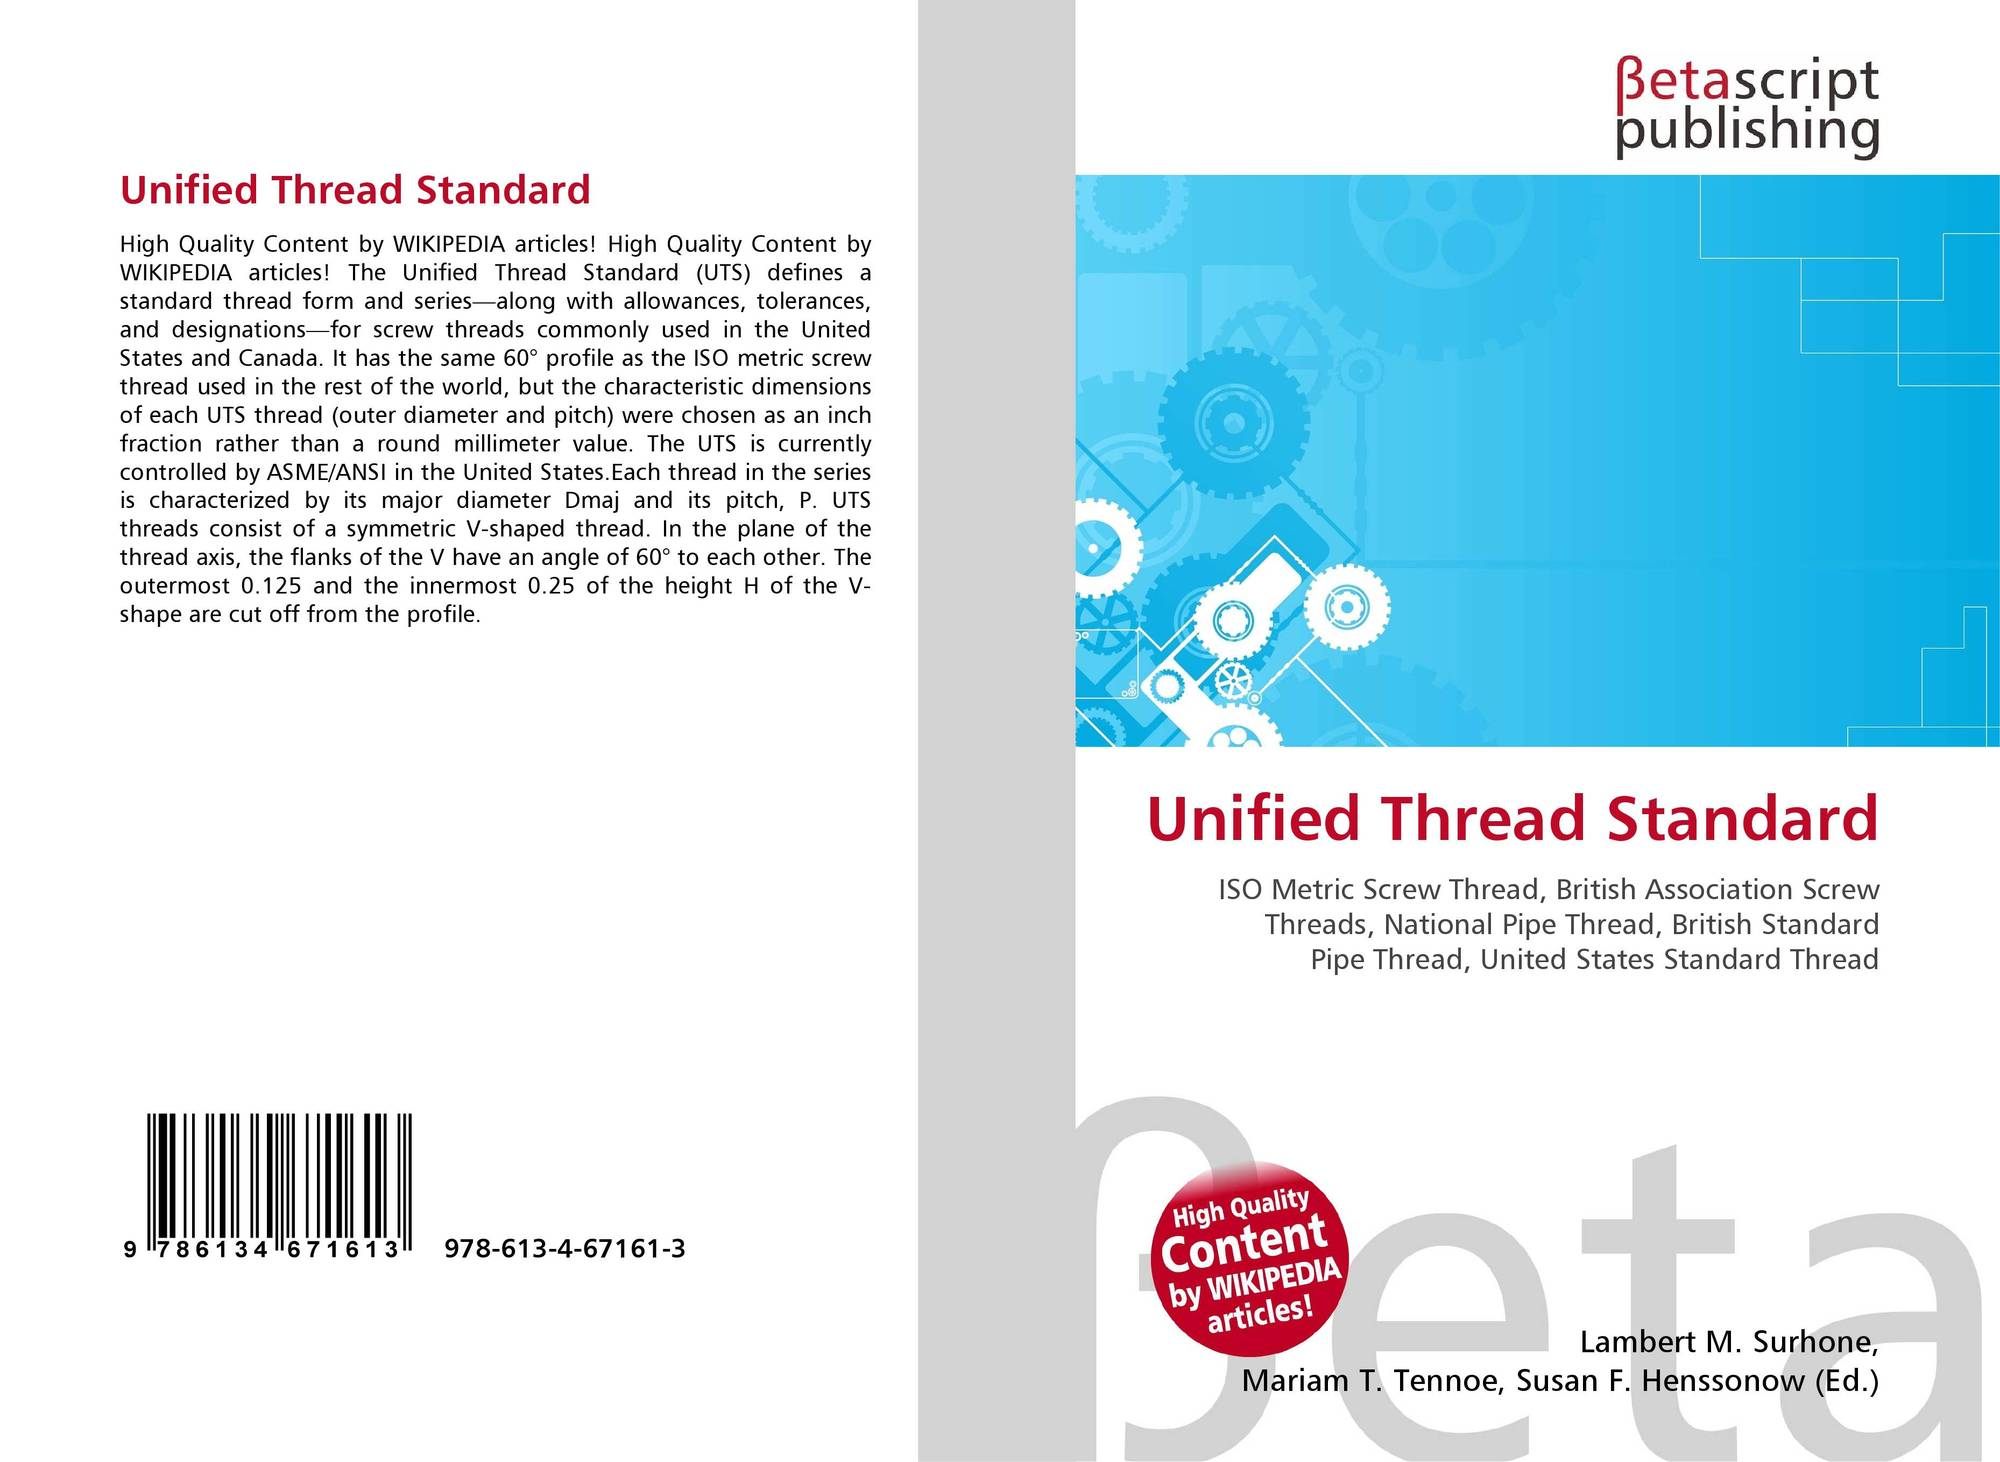 Unified thread standard